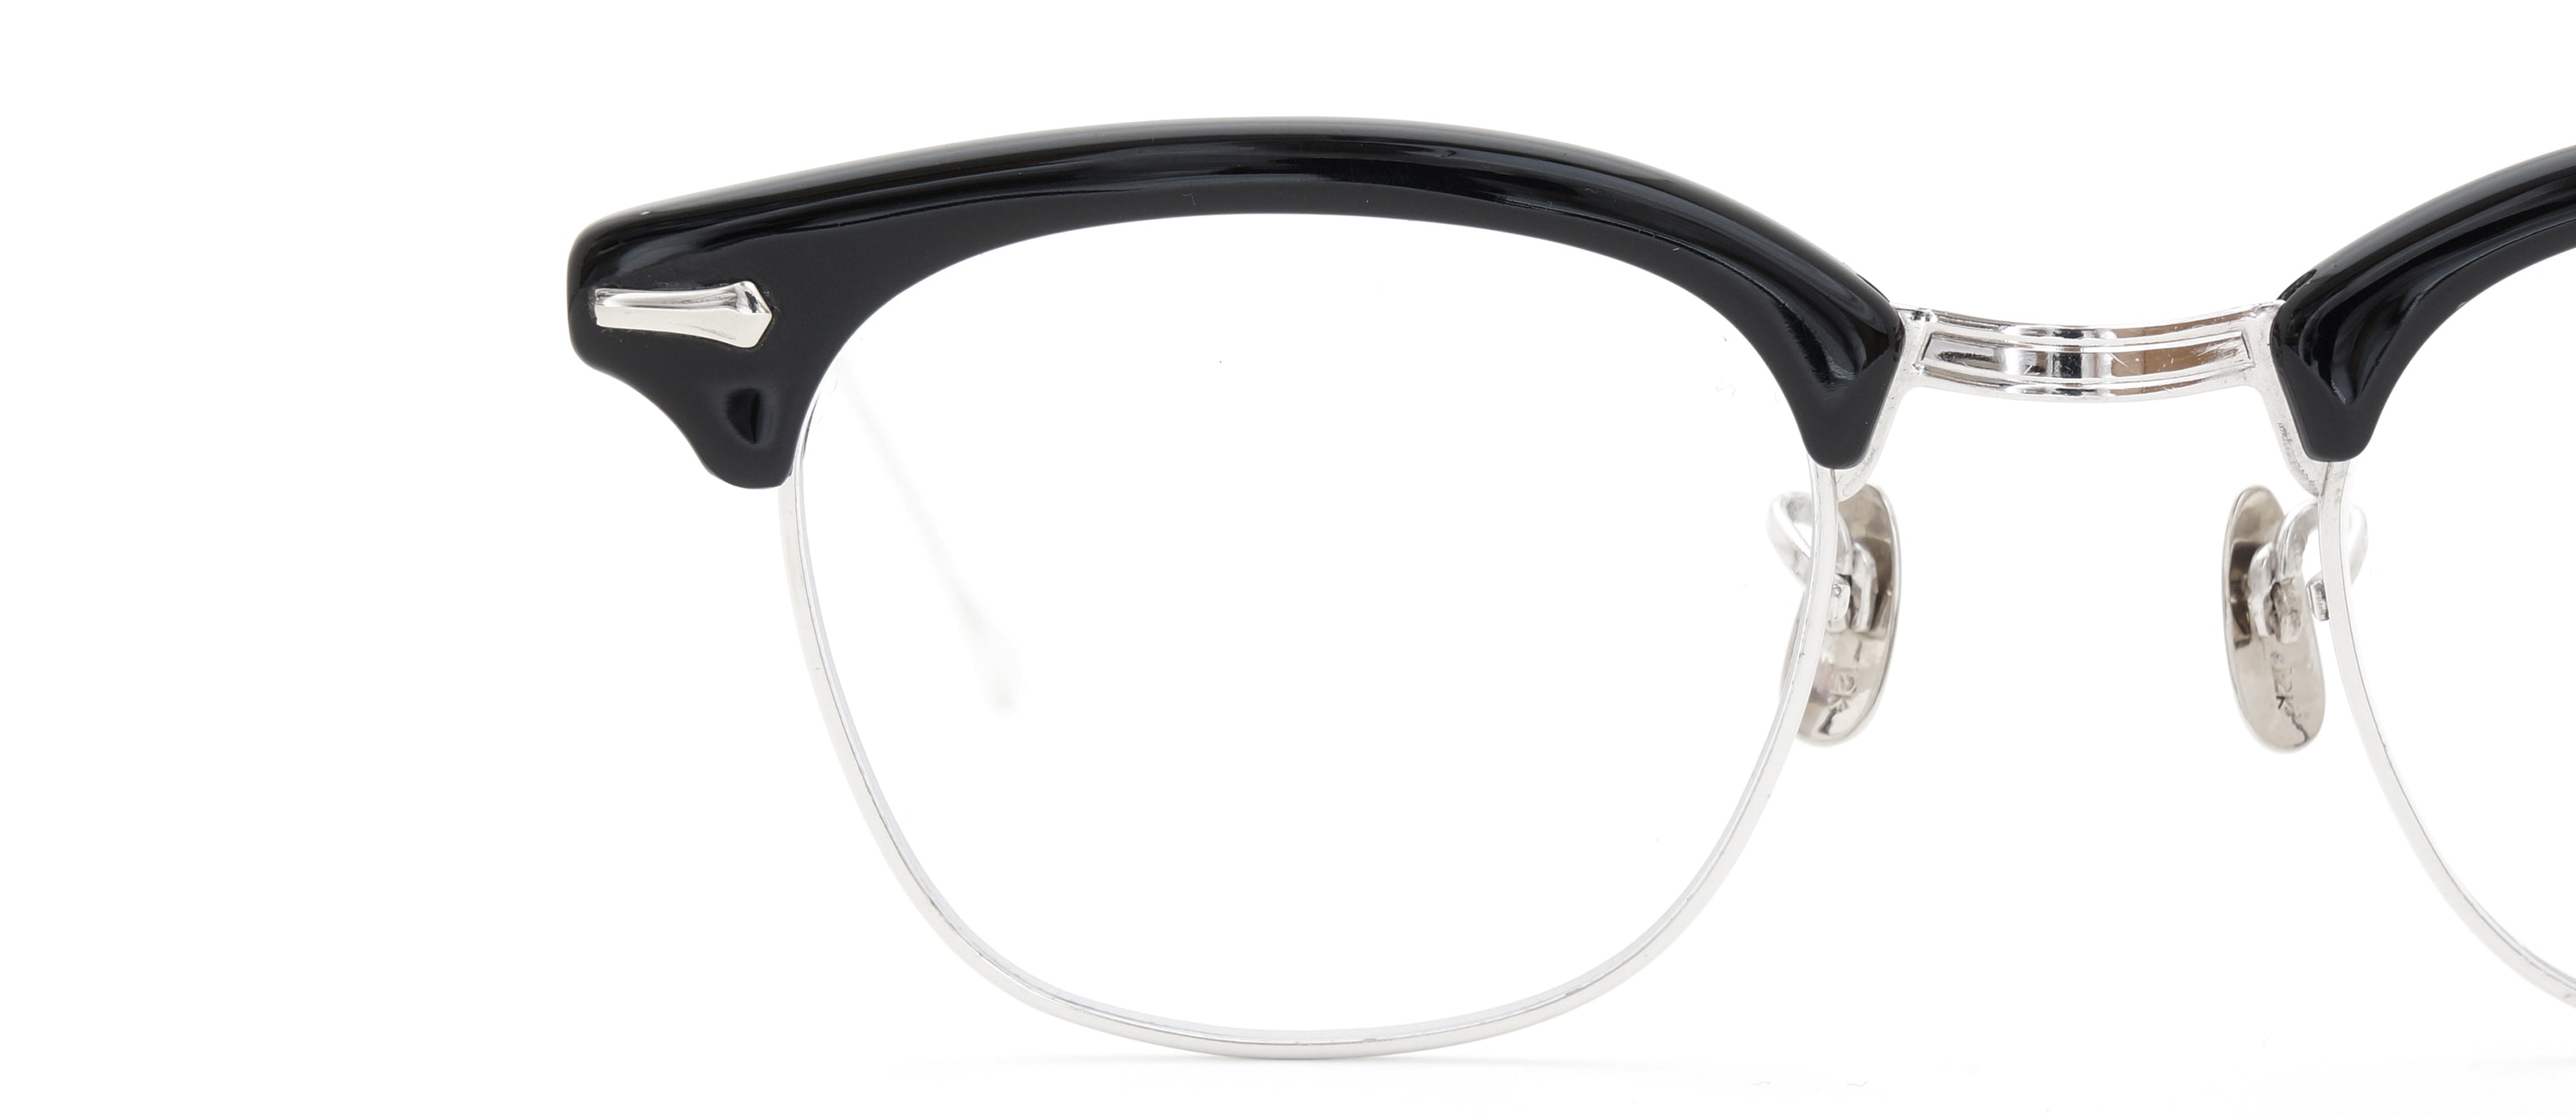 The Spectacle メガネ 1950s-1960s SHURON RONSIR GF-Temple Black WG 1/10 12KGF 46/22 イメージ18